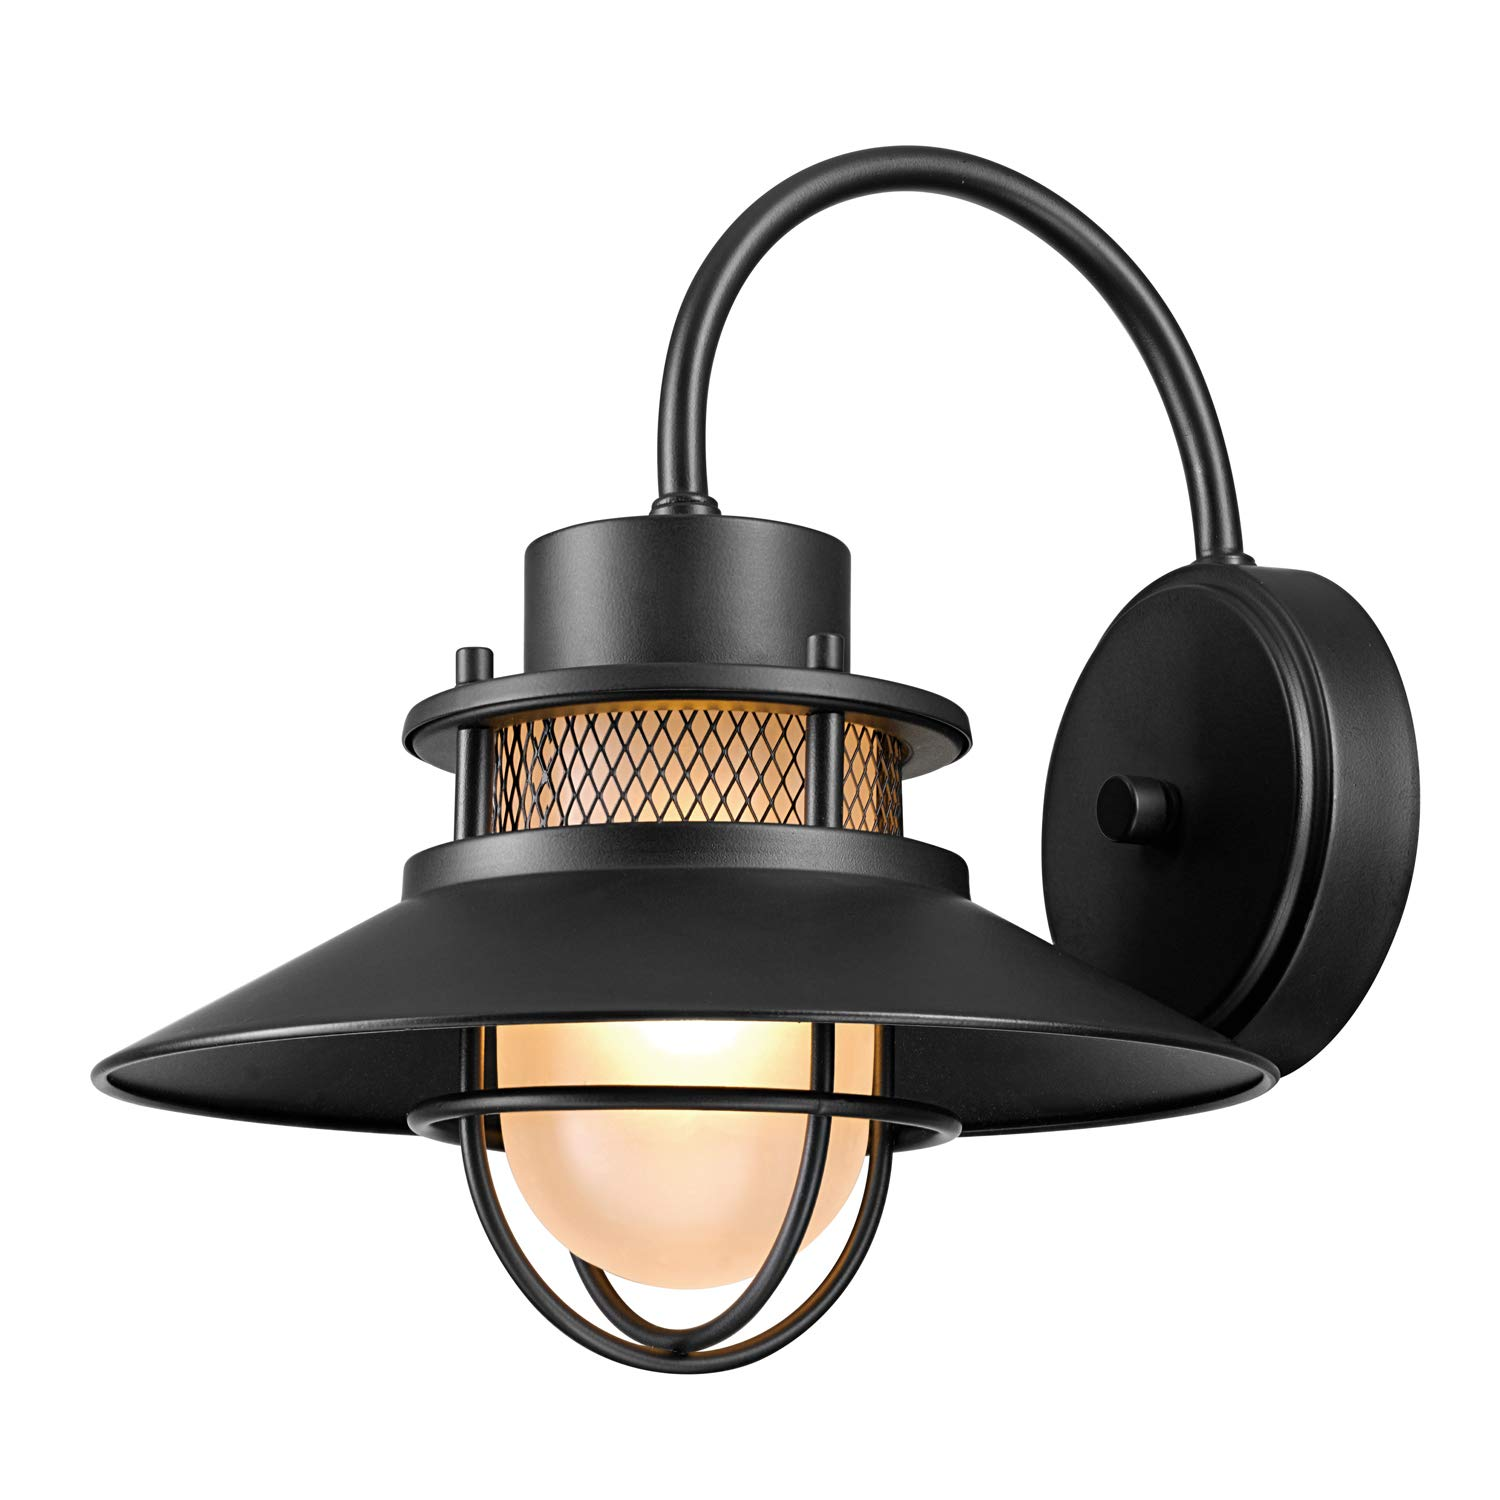 Globe Electric 44233 Liam Outdoor Wall Sconce, 11'', Matte Black by Globe Electric